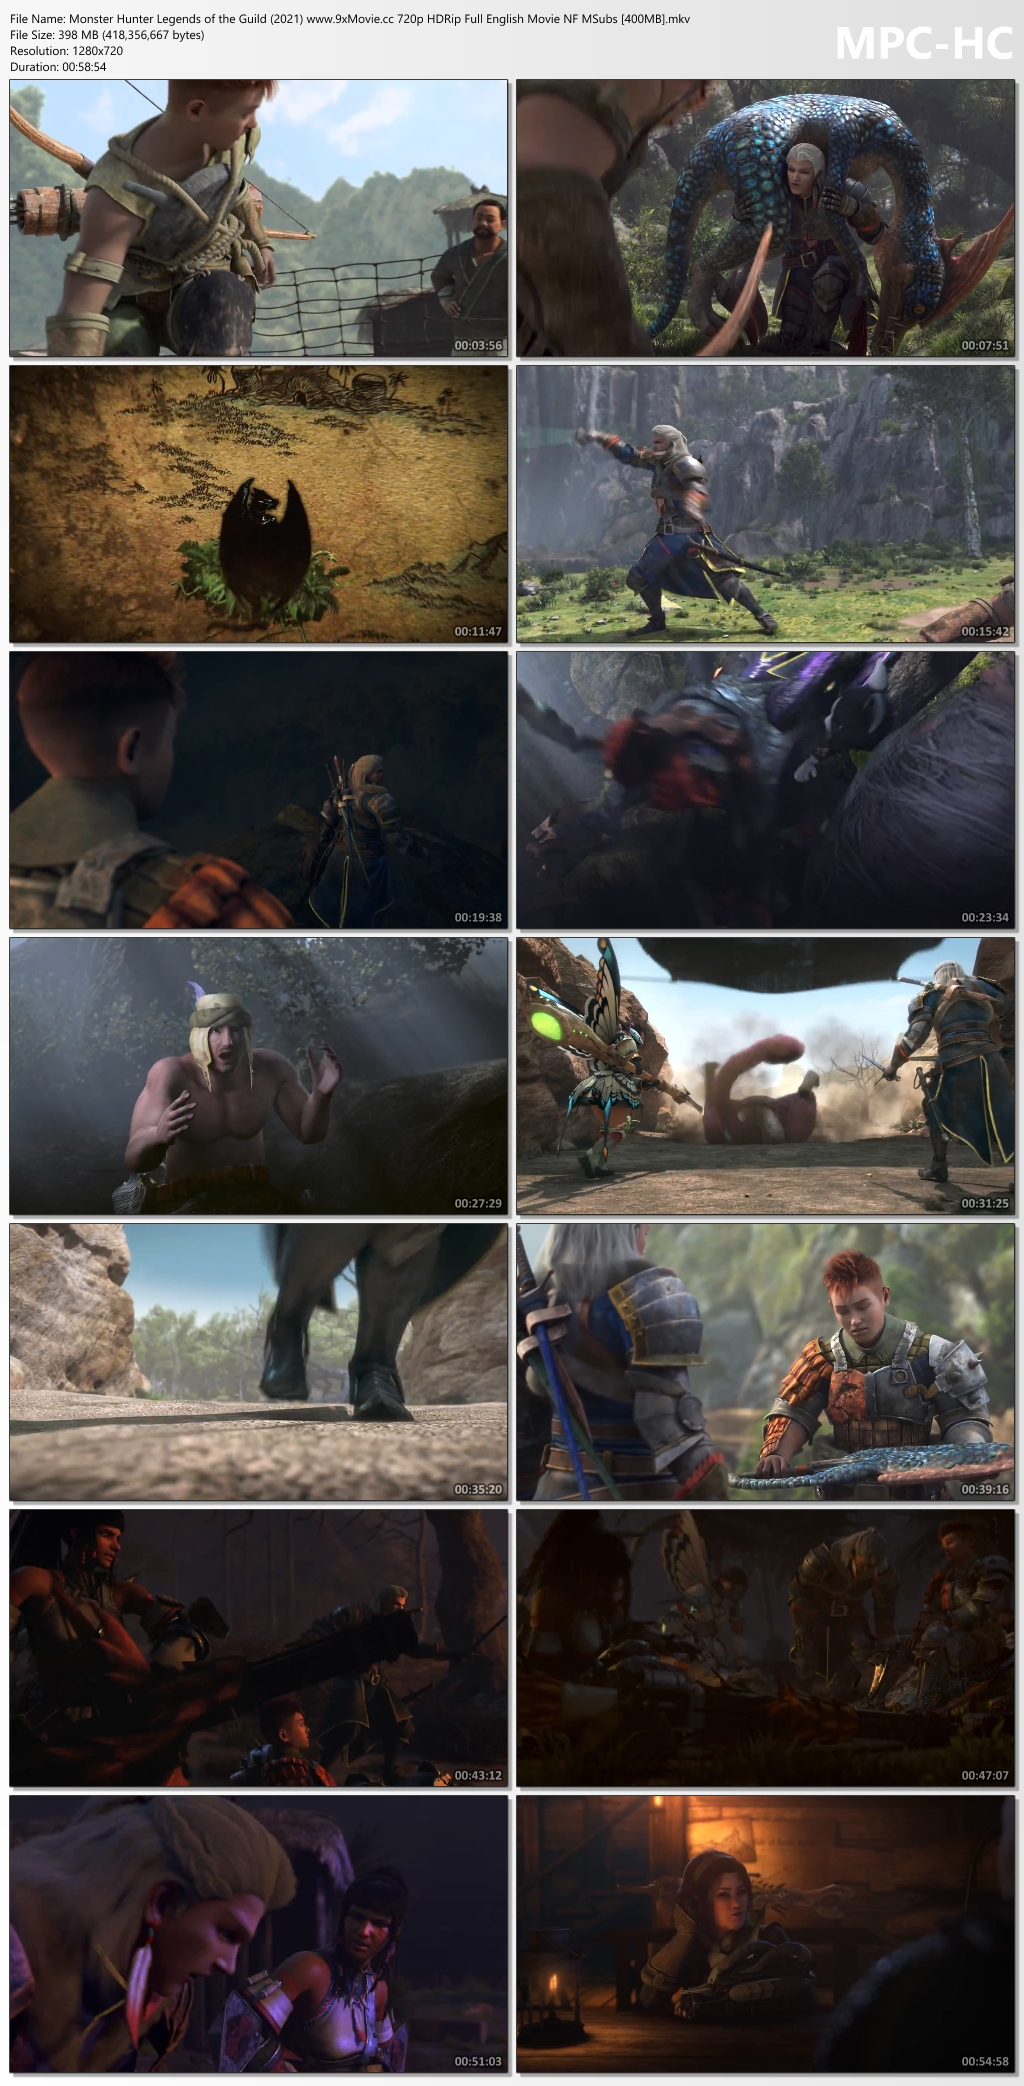 Monster-Hunter-Legends-of-the-Guild-2021-www-9x-Movie-cc-720p-HDRip-Full-English-Movie-NF-MSubs-400-